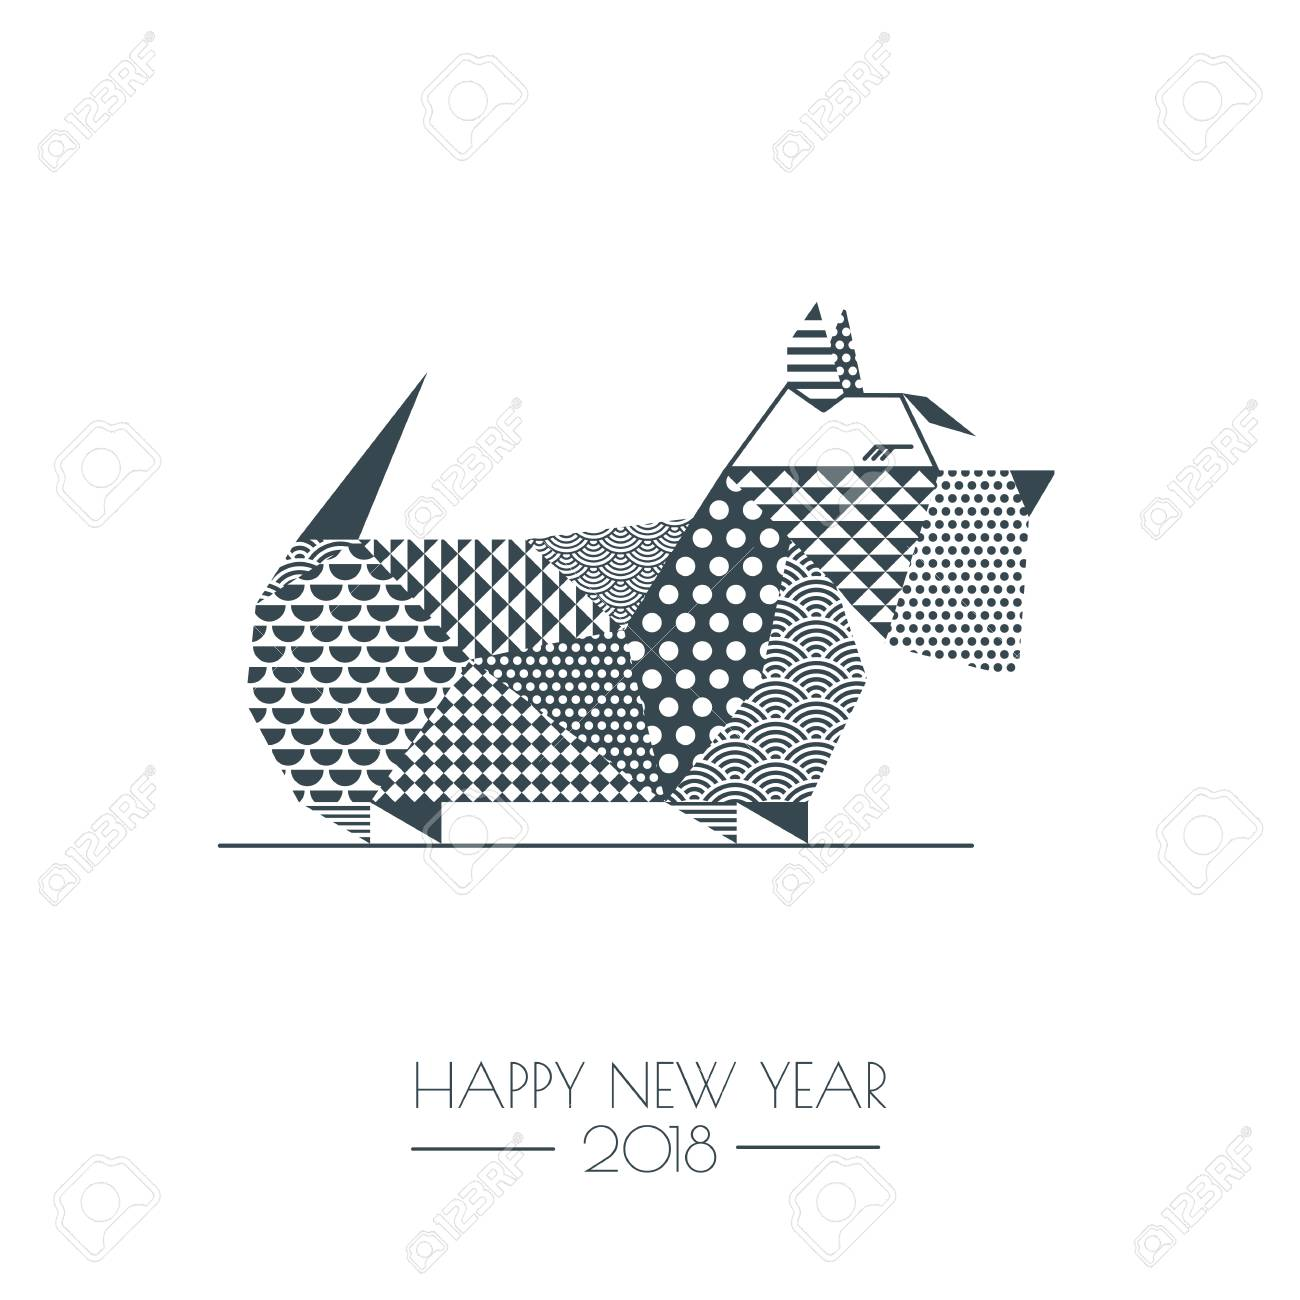 vector vector black white illustration of scottish terrier dog with abstract geometric triangle texture creative new year greeting card poster